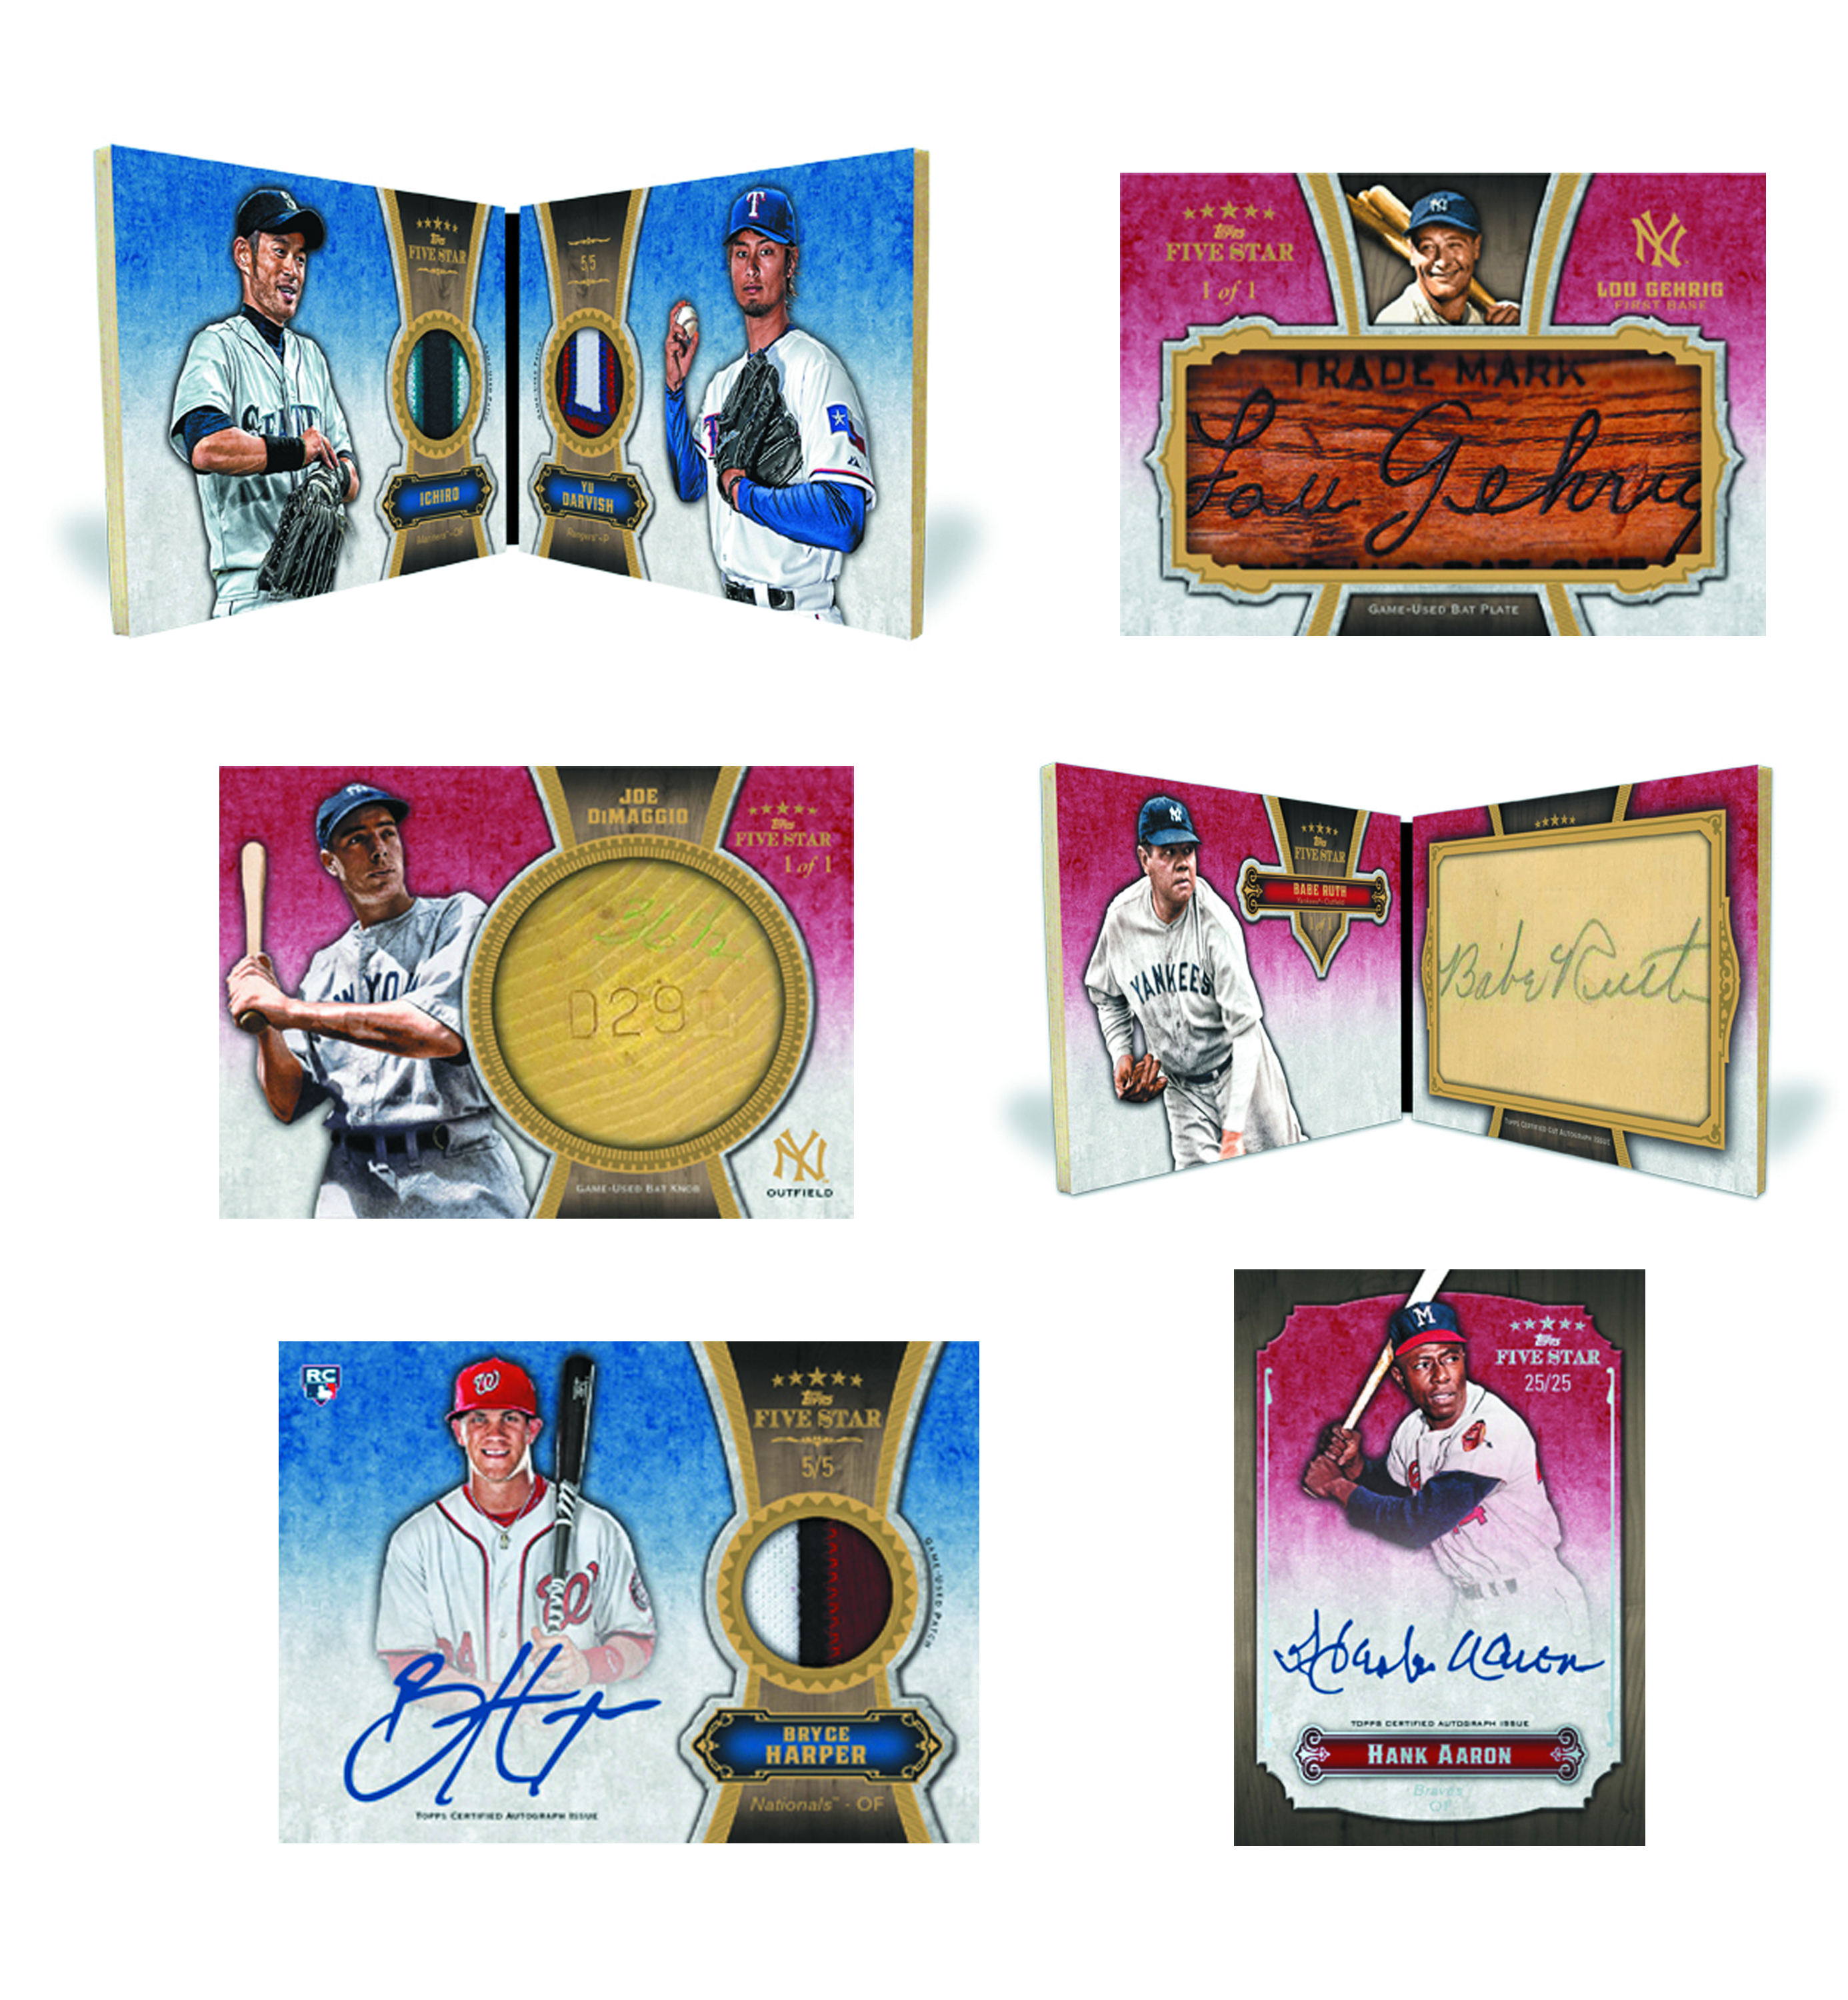 TOPPS 2012 FIVE STAR BASEBALL T/C BOX